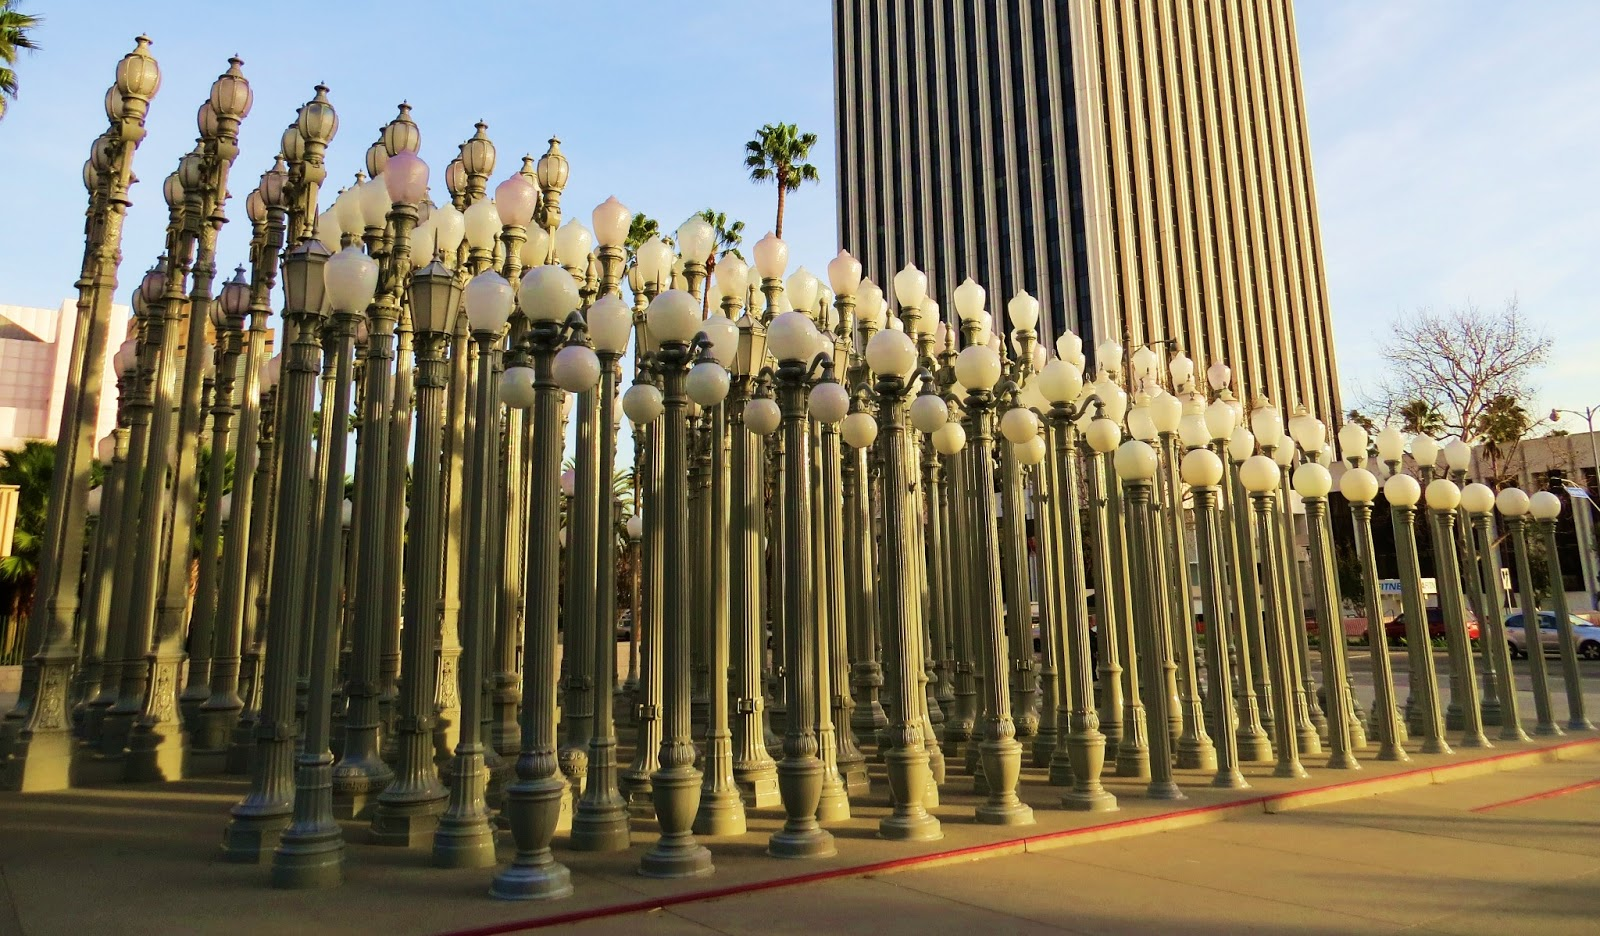 Riot? empfehlungsbonus williamhill williamhill desktop-login Why not.: lacma-los angeles county museum of art-renzo piano ...